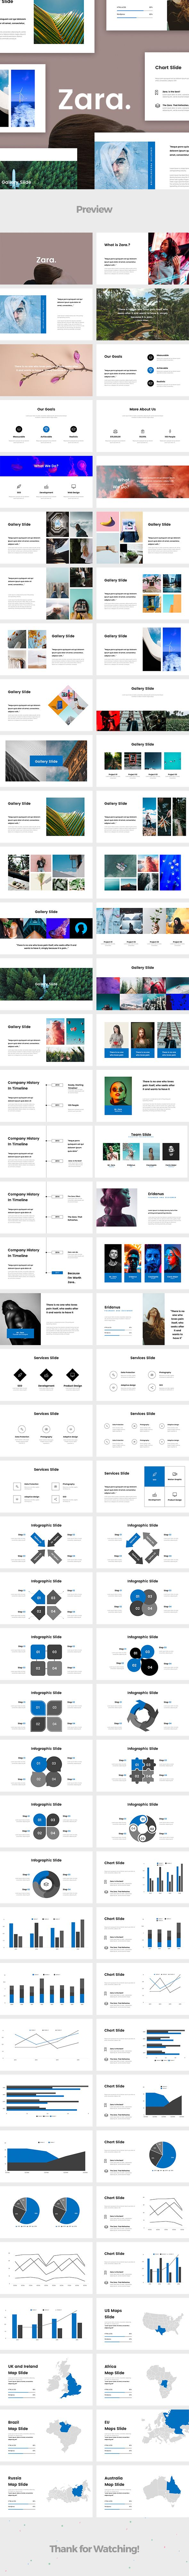 Zara powerpoint template presentation templates keynote and template zara powerpoint template toneelgroepblik Image collections